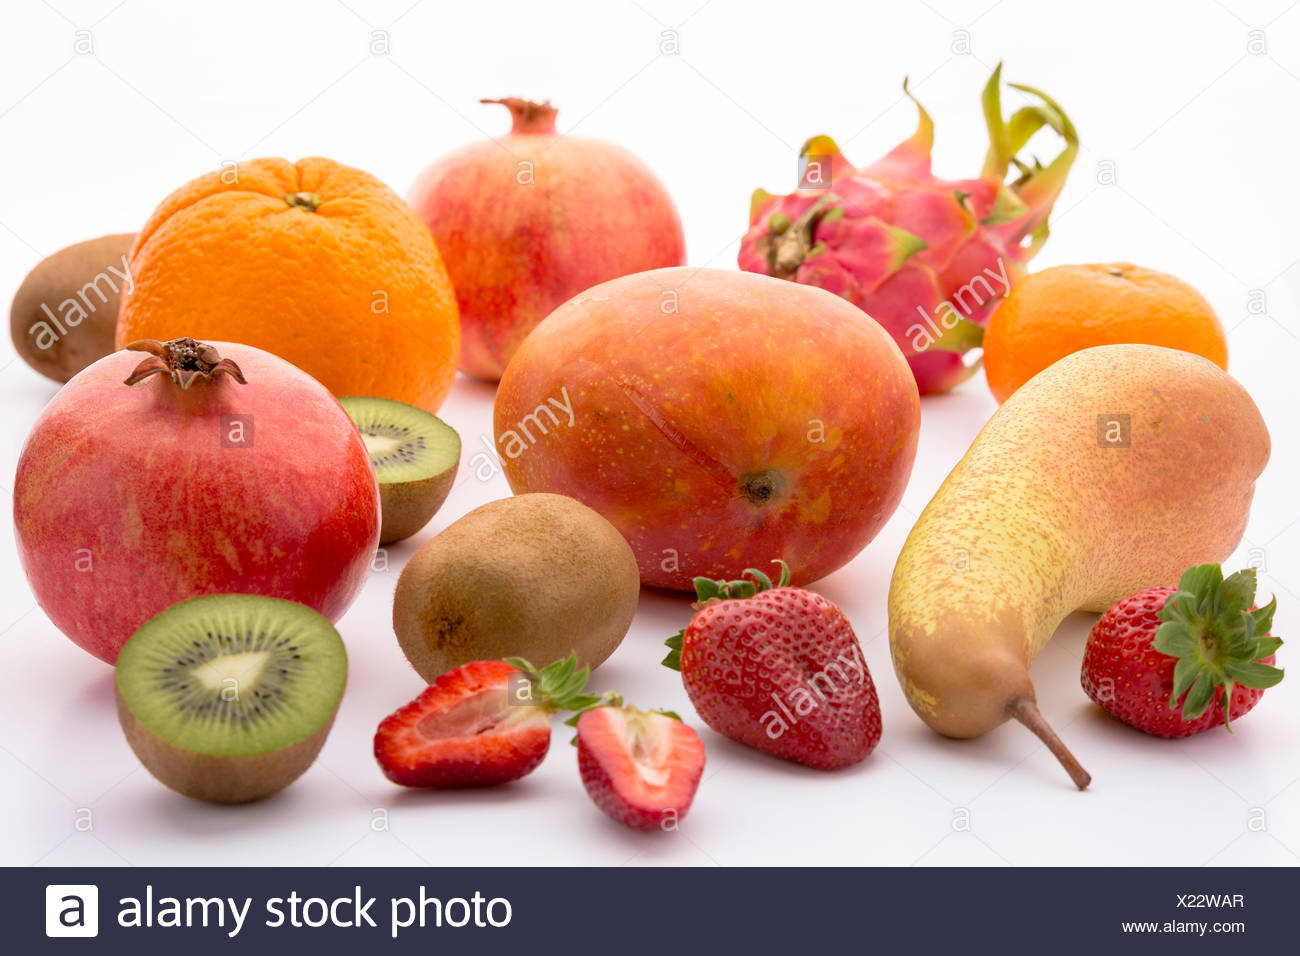 Exotic and mediterranean fruits for a multivitamin boost. Pitaya, mango, orange, mandarine, kiwi, pomegranate, pear and strawberry. Ranging in colour from green to orange, tangerine, red, purple and violet. - Stock Image